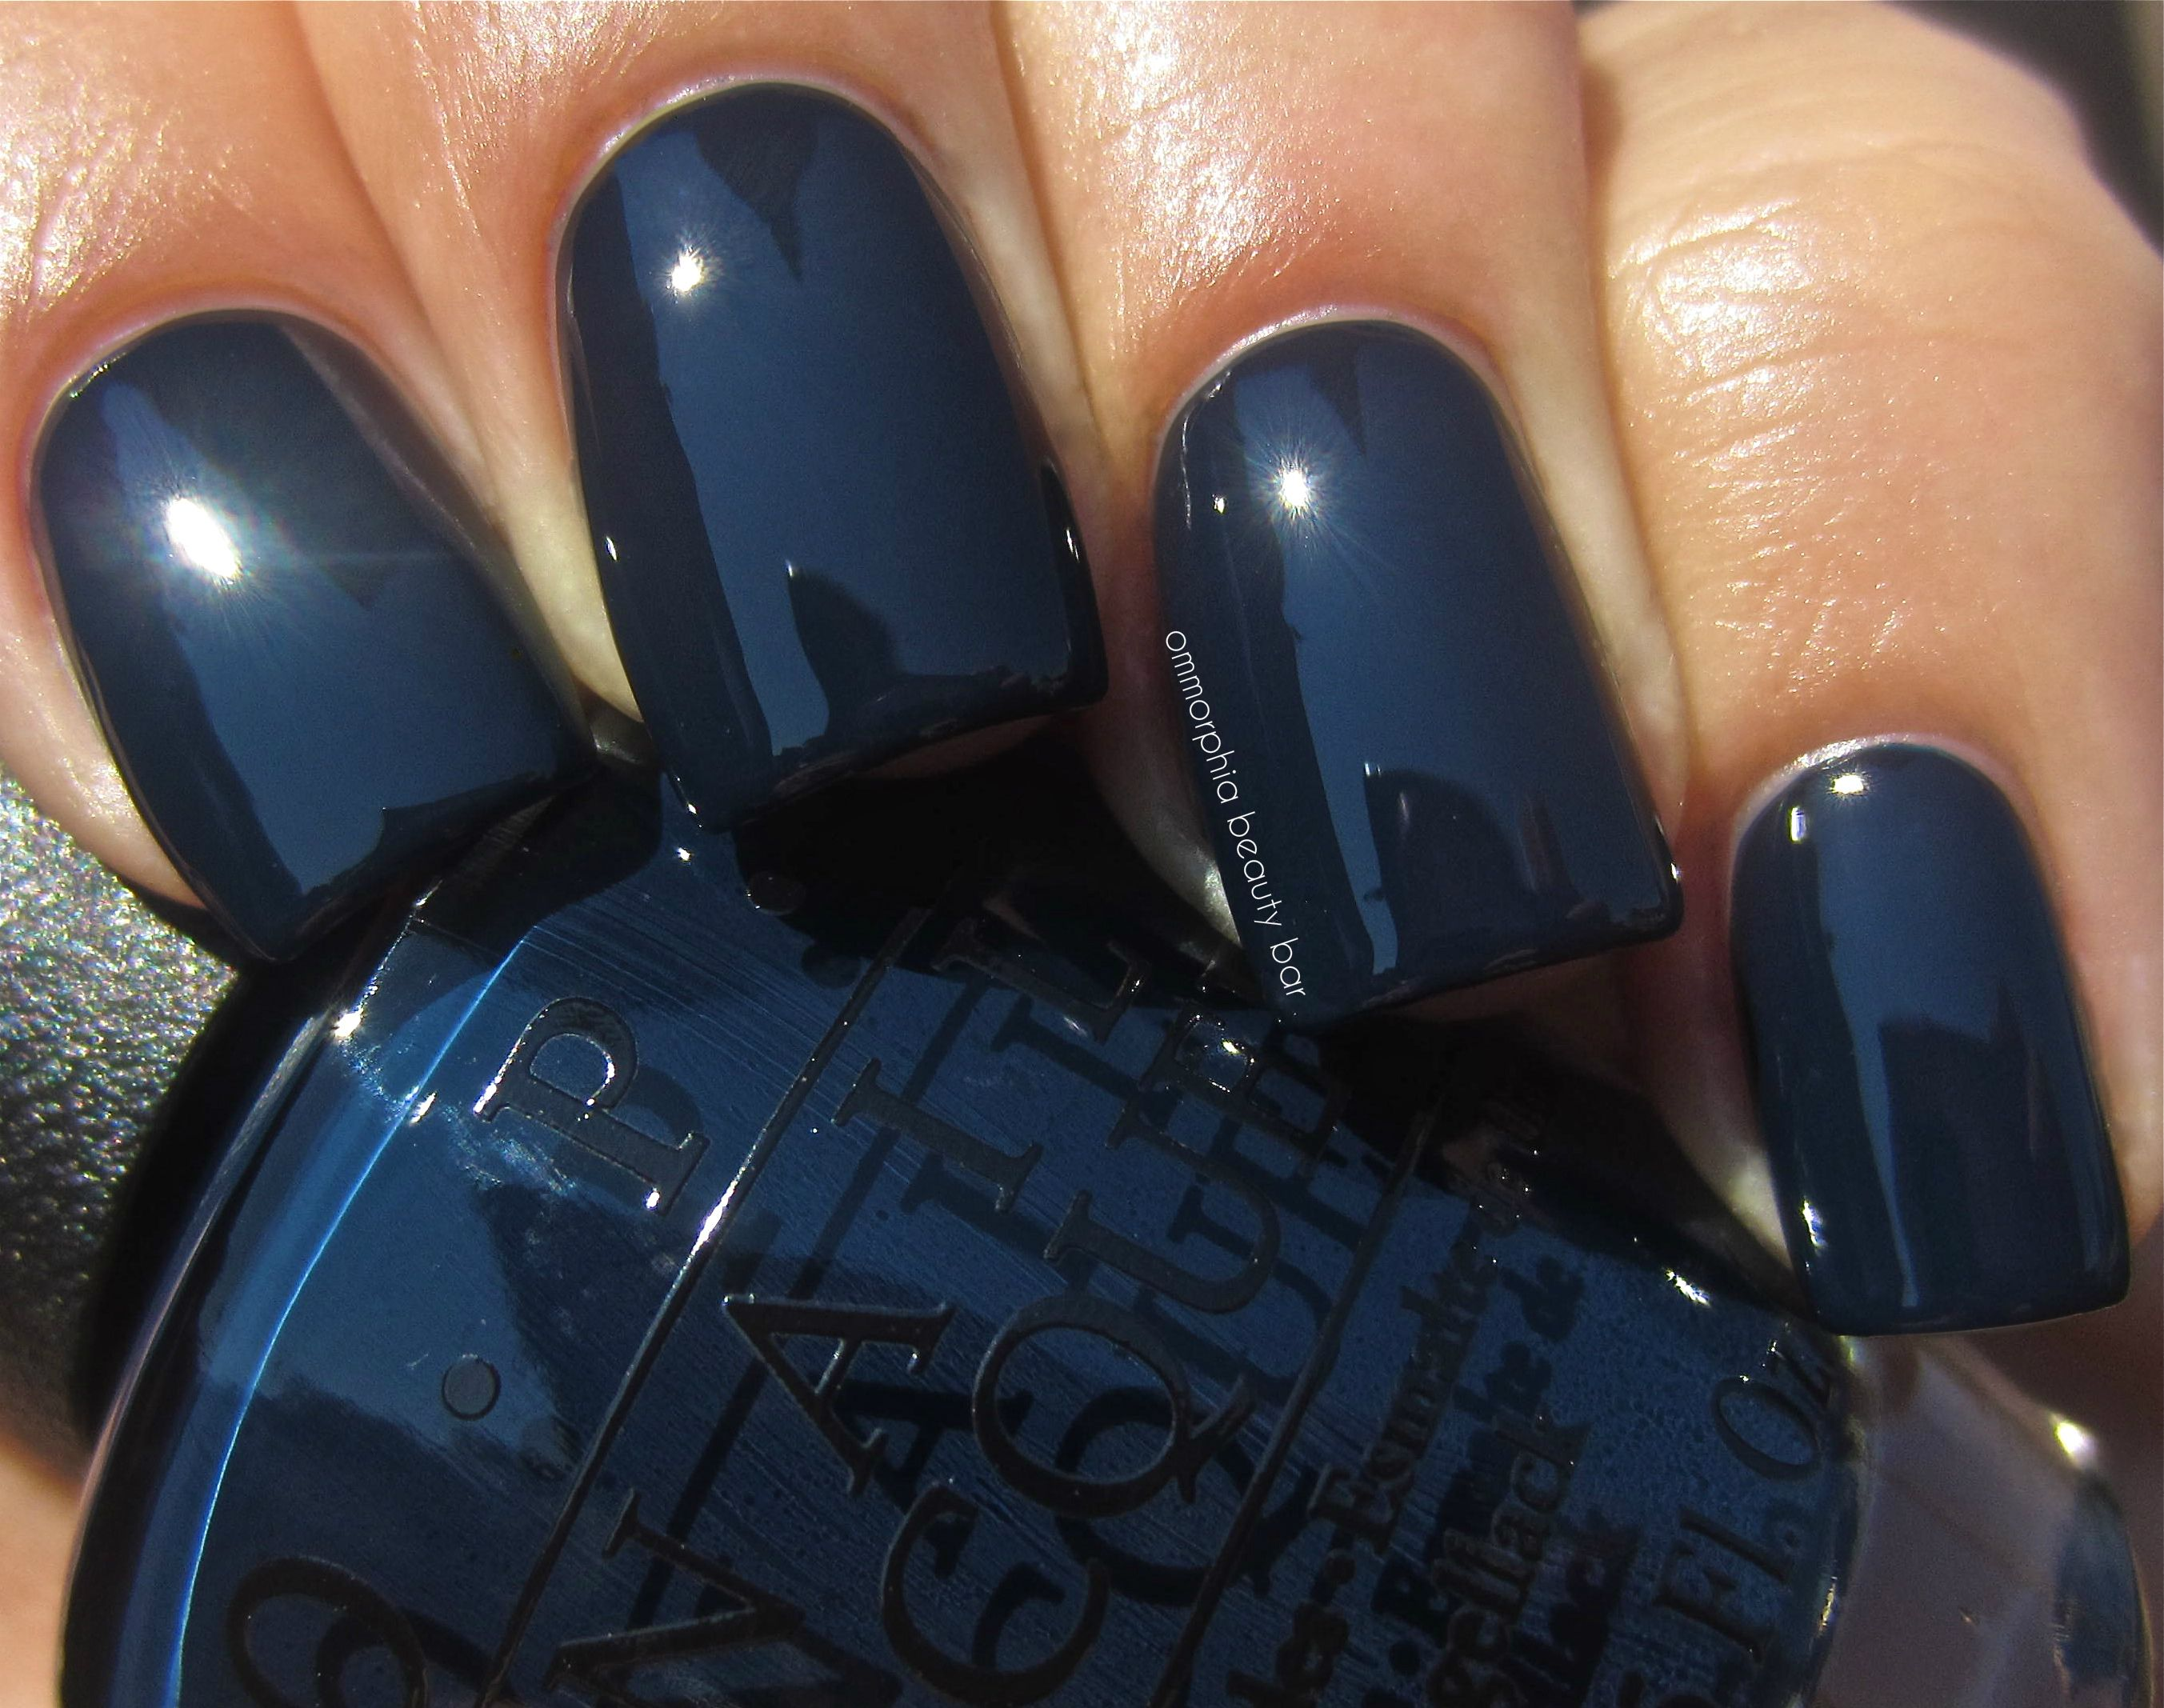 opi-incognito-in-sausalito-swatch-2.jpg 2,705×2,135 pixels | Beauty ...